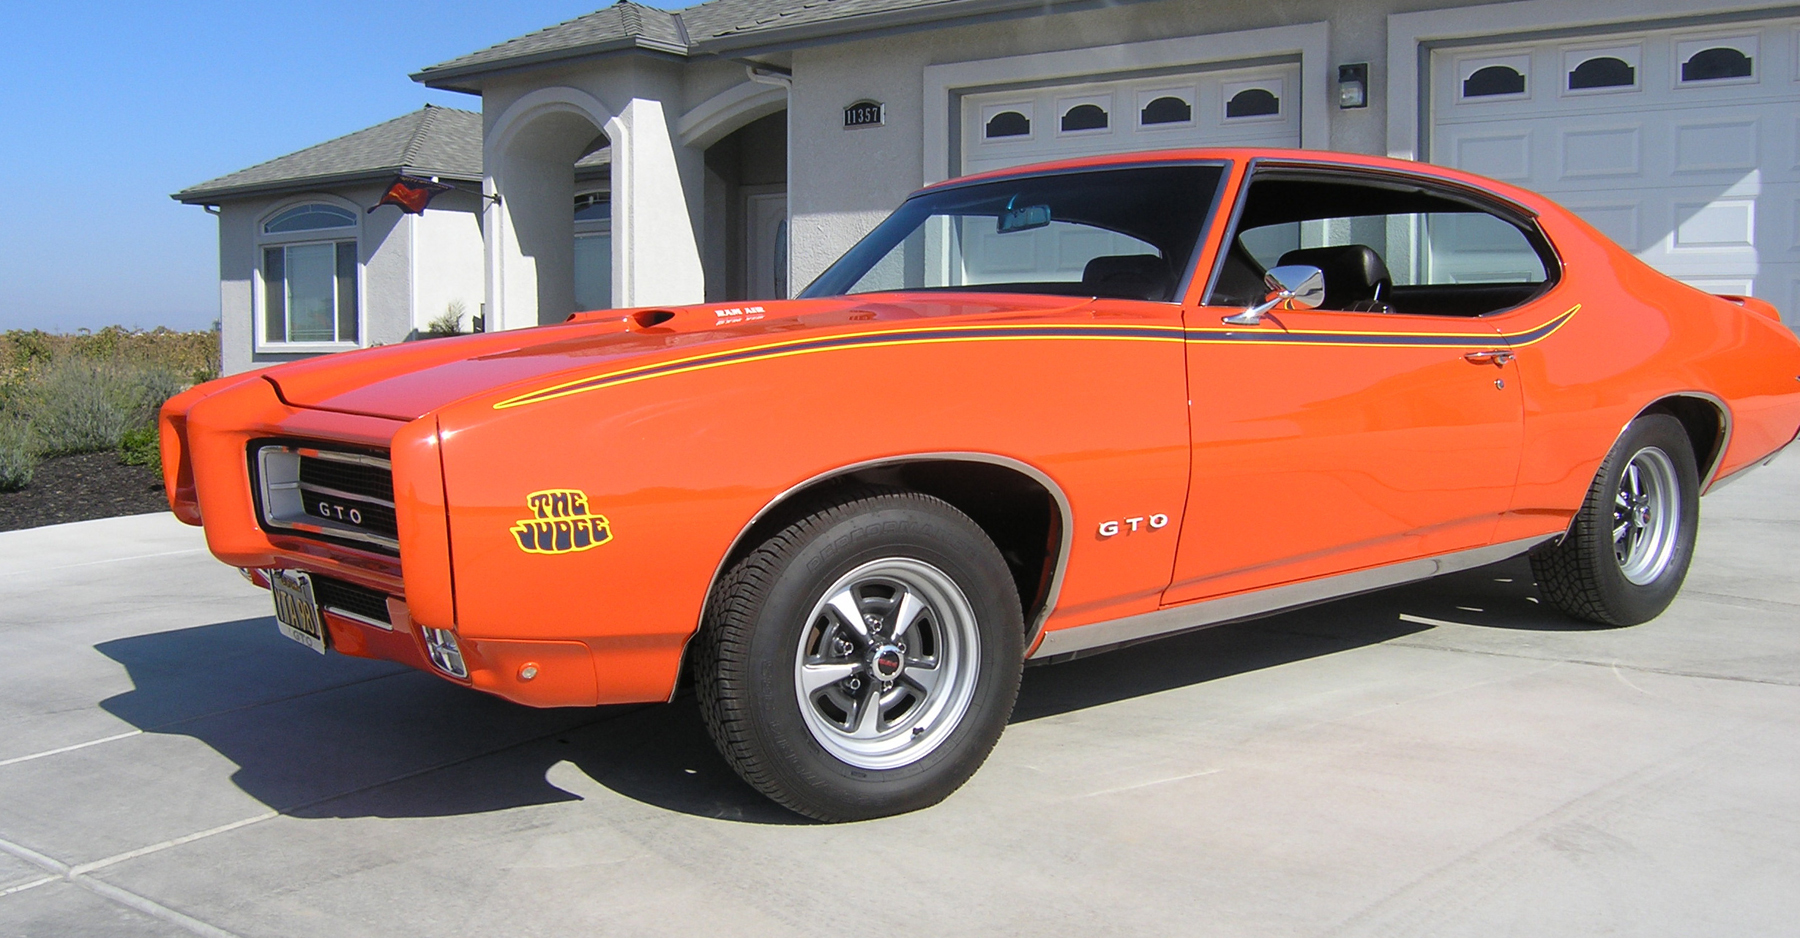 1969 Pontiac GTO Judge Powered by a 366-hp V-8 - Classic Classics ...